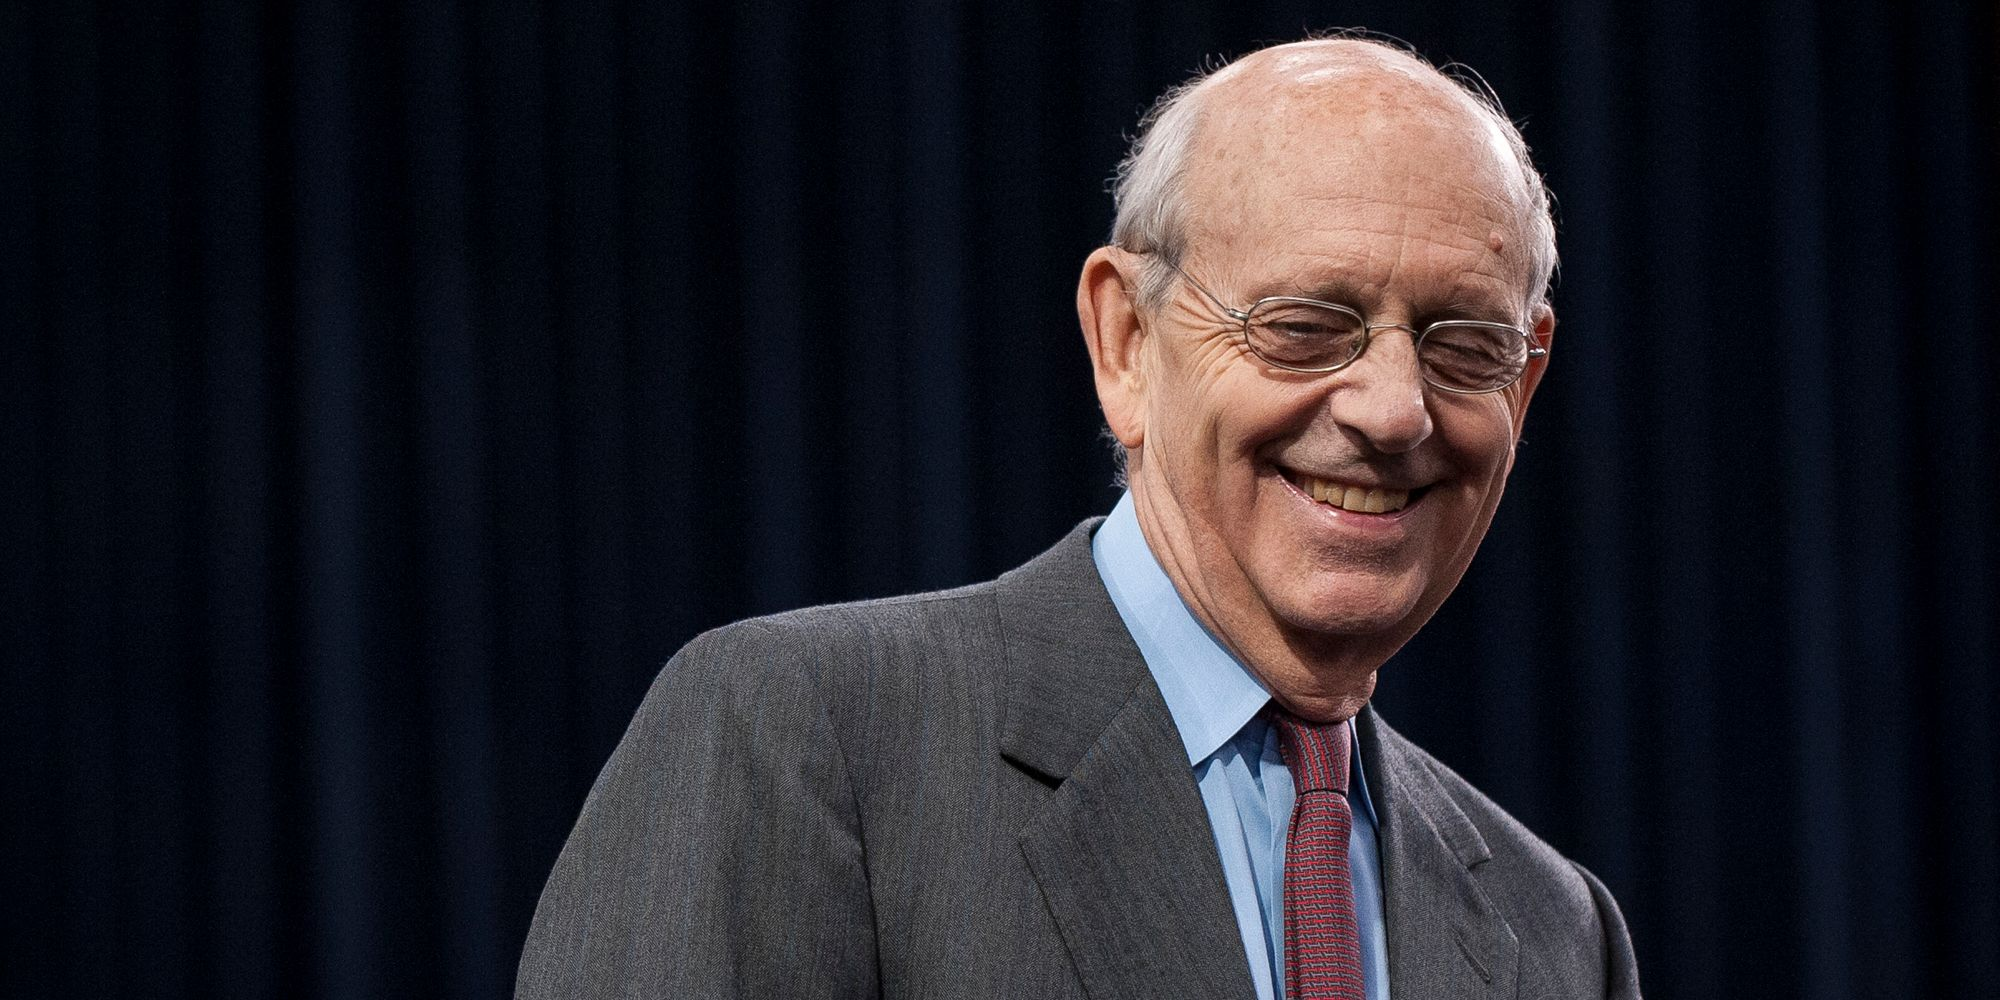 justice breyer is dying for a case that will kill the death justice breyer is dying for a case that will kill the death penalty for good the huffington post